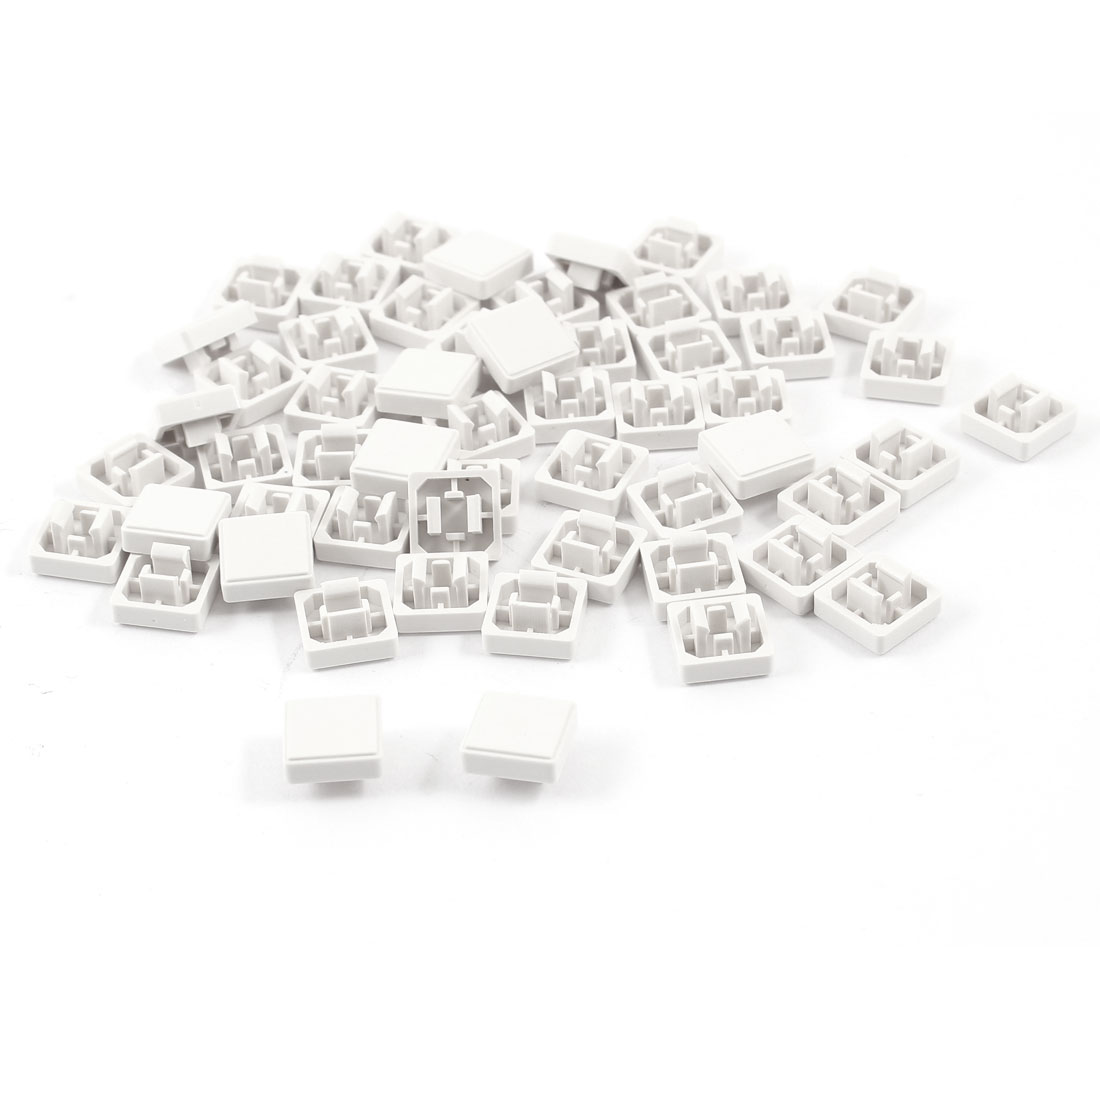 55 Pcs Square Tactile Button Caps Covers Protector White for 12mmx12 Tact Switch